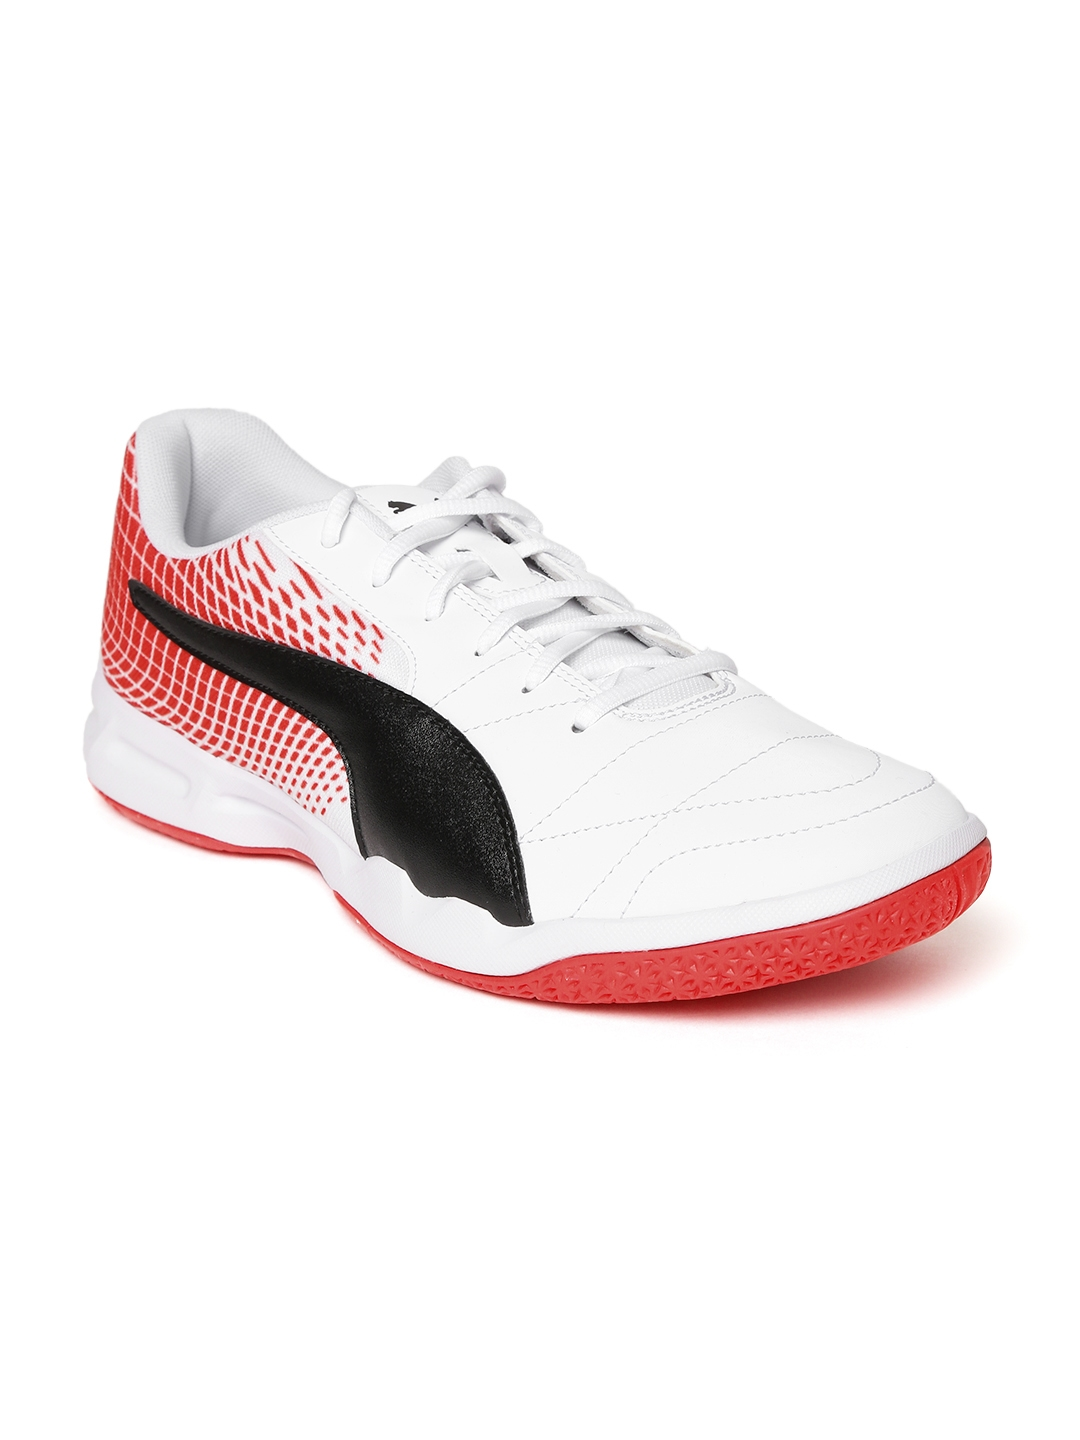 012a27833ff Buy Puma Men White Veloz Indoor NG Badminton Shoes - Sports Shoes ...